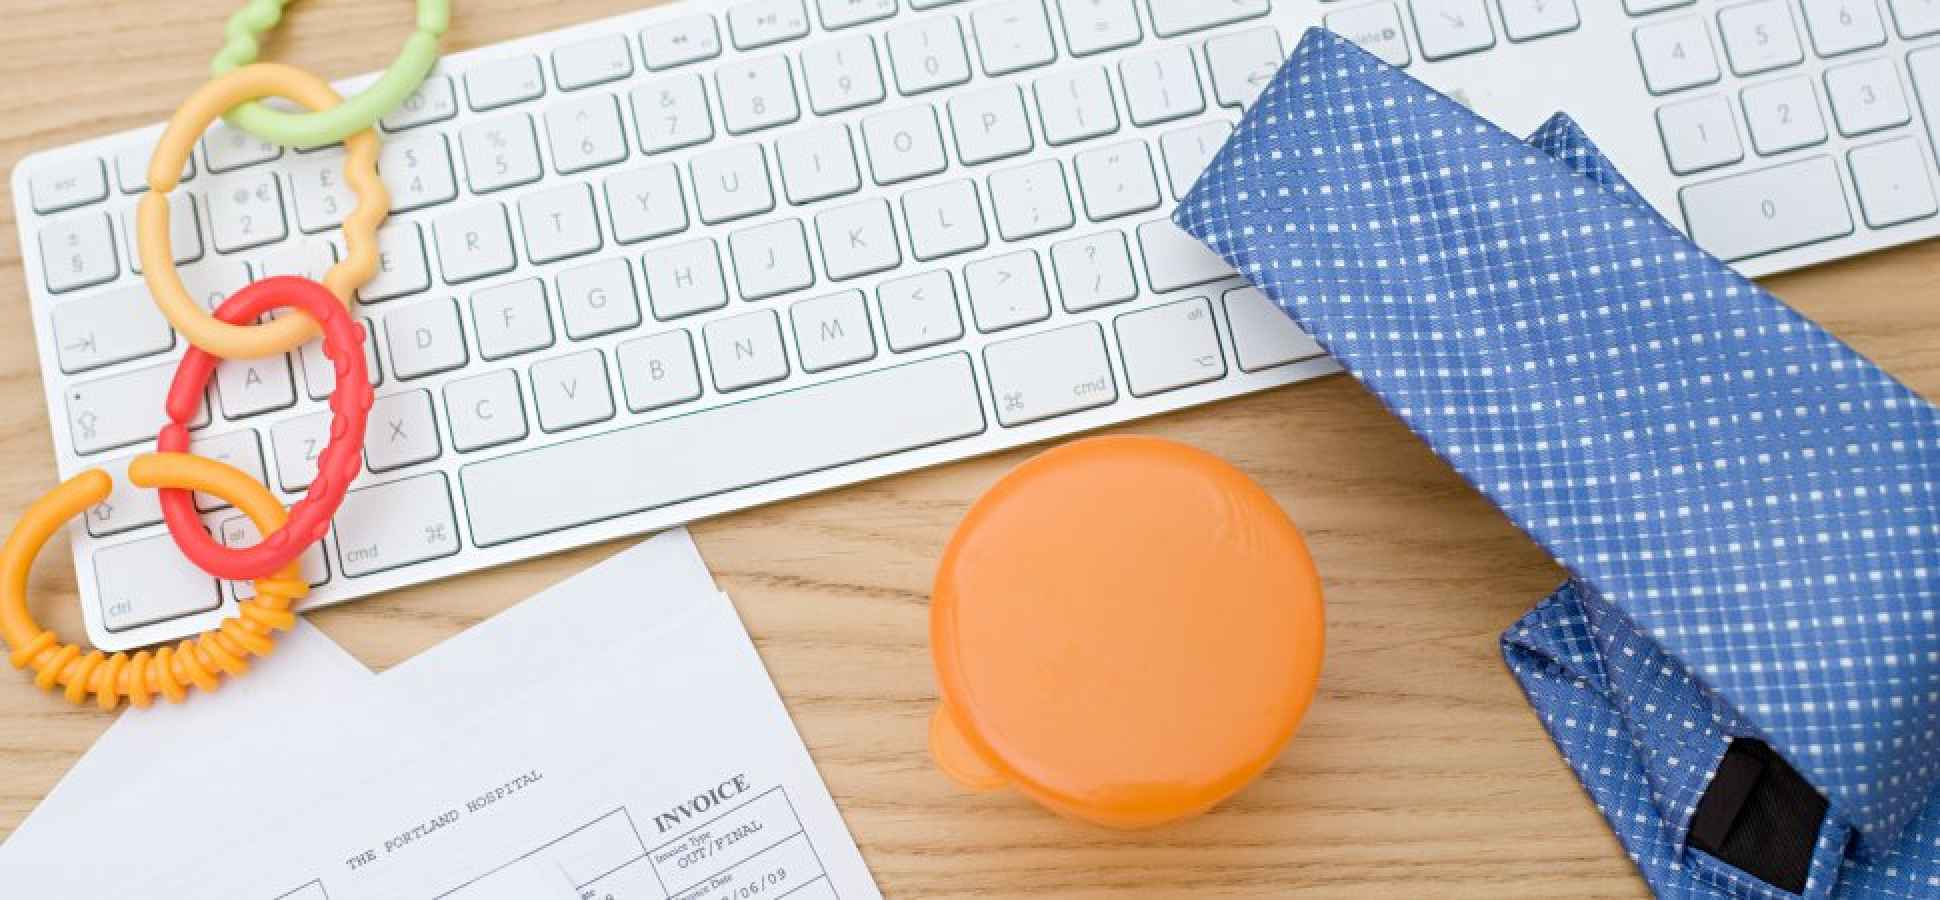 8 Tips for Staying Productive While Working From Home